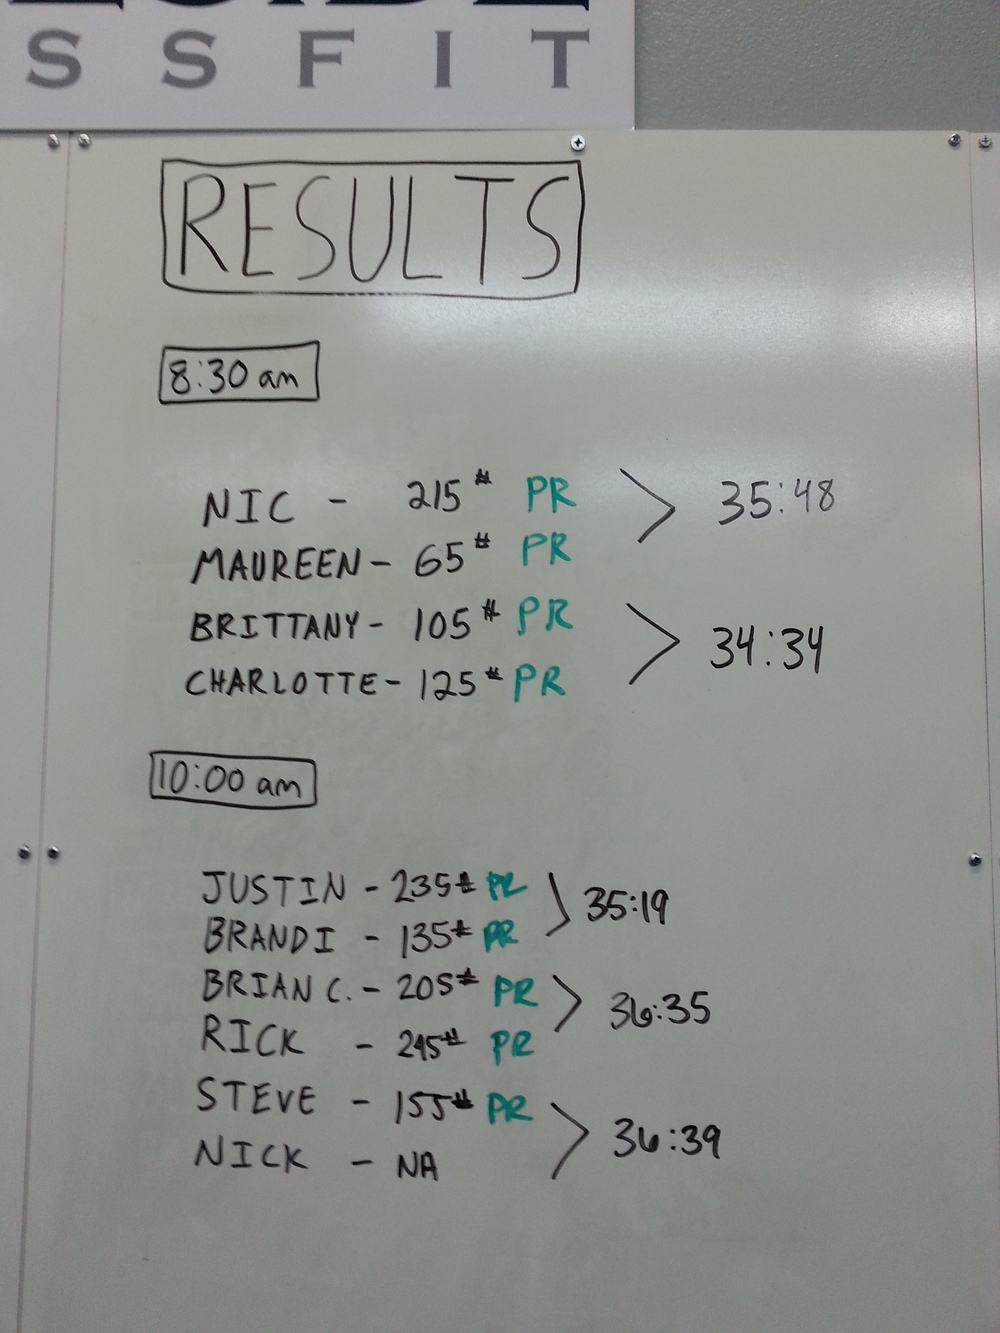 Results from Saturday 8/3